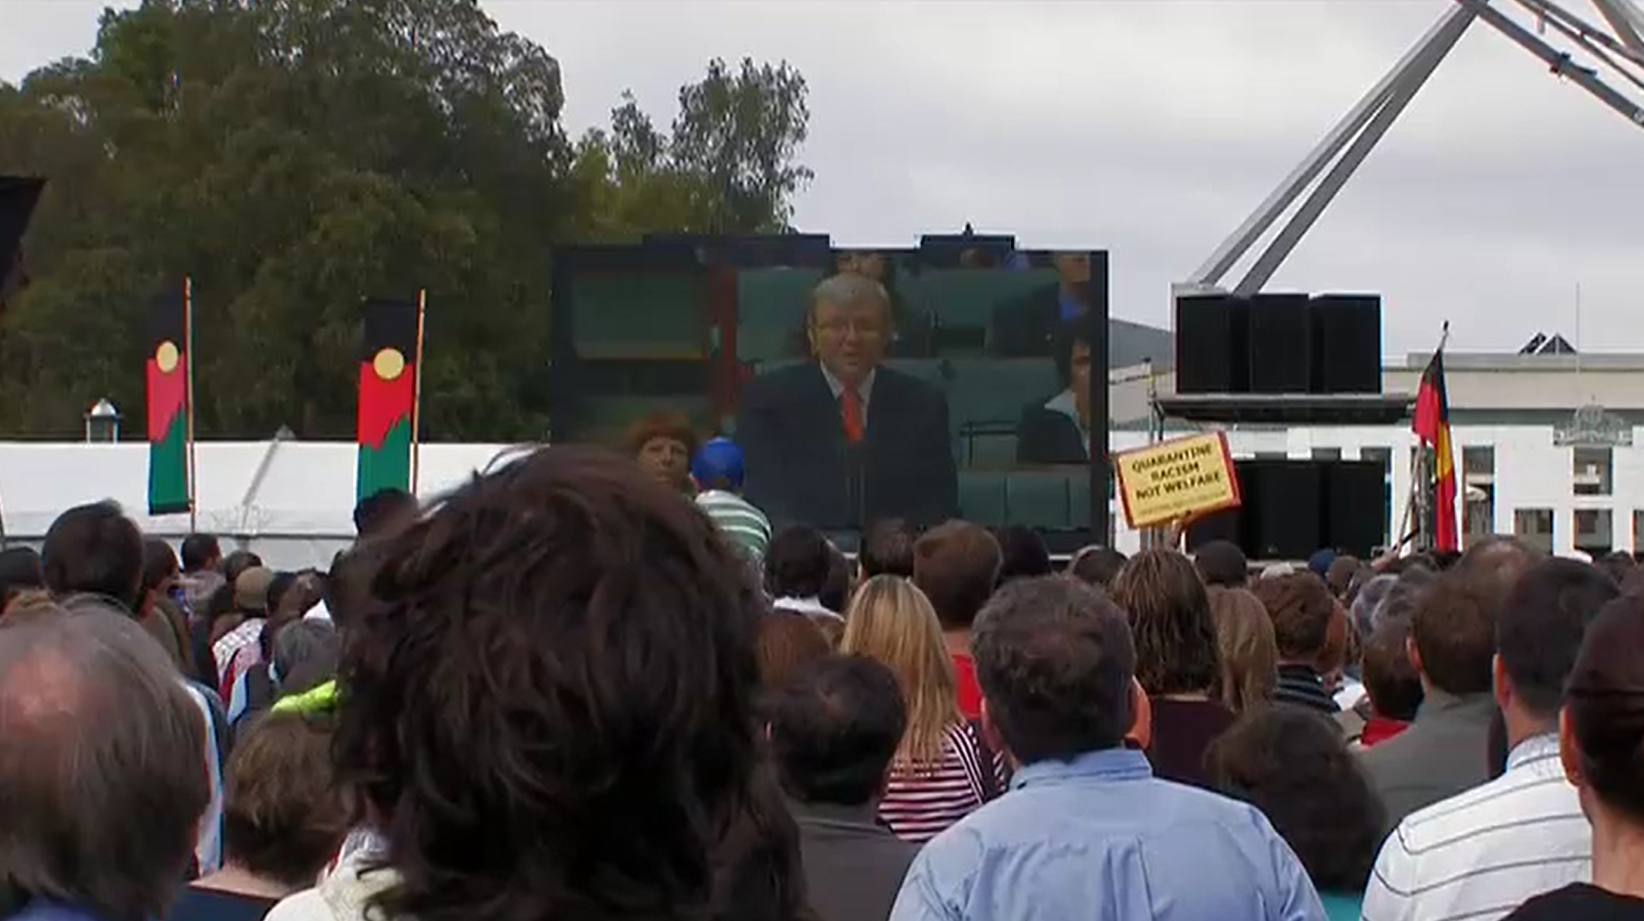 On 13 February 2008 crowds gathered in Australian capital cities to watch Prime Minister Kevin Rudd deliver The Apology to the Stolen Generations live from the House of Representatives at Australian Parliament House. This crowd is watching from the lawns in front of Australian Parliament House. Still from Emily in Japan – The making of an exhibition 2009. Courtesy Ronin Films.